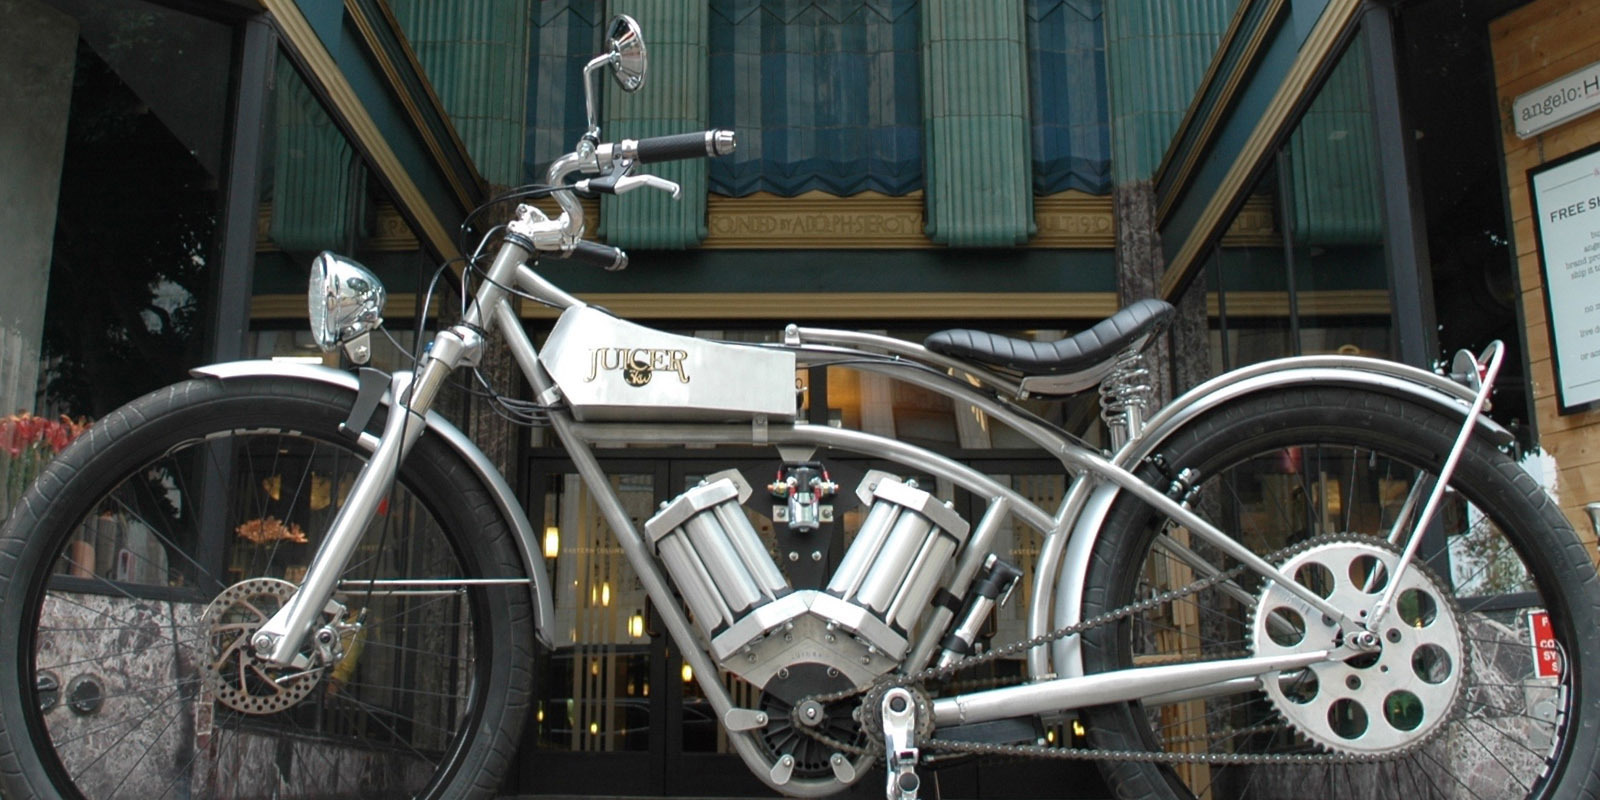 Juicer Makes Vintage Looking All Electric Motorcycles Inverse